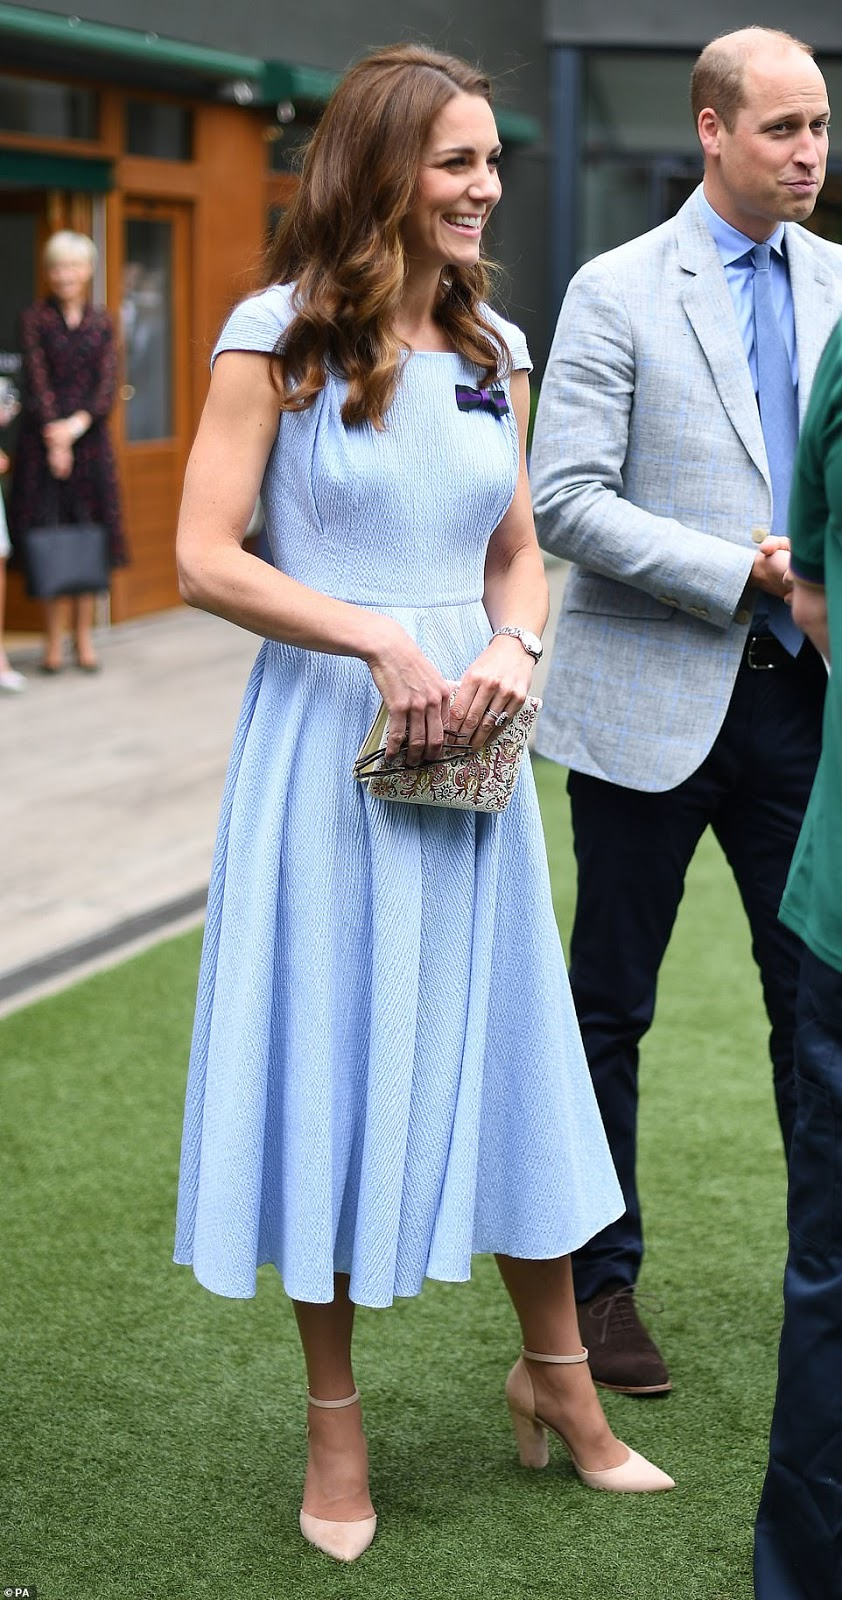 The Duchess of Cambridge shines in an Emilia Wickstead dress at the 2019 Wimbledon Men's Final